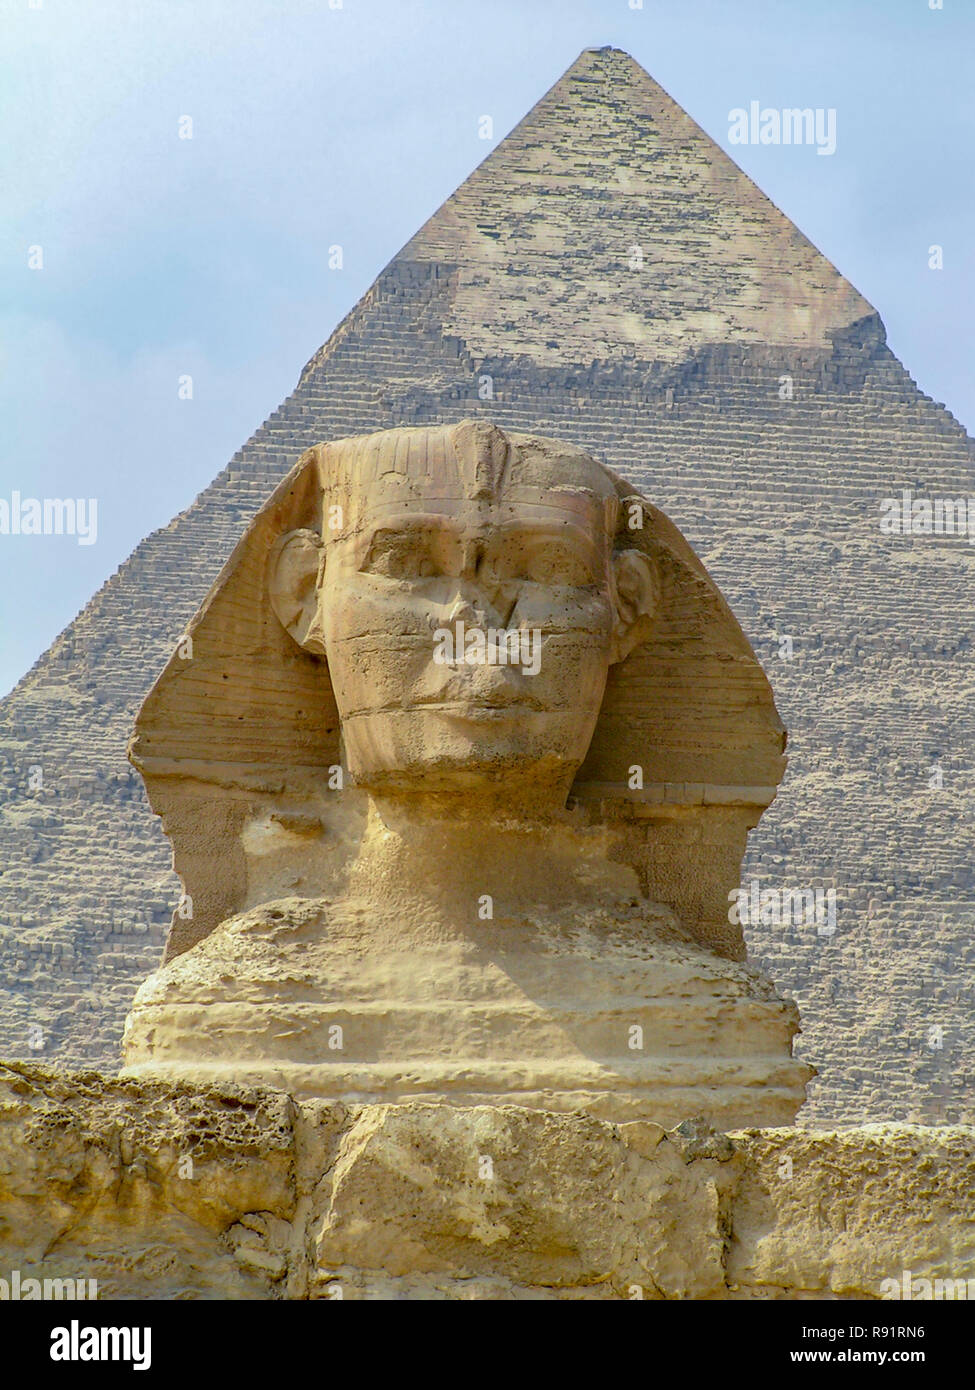 Sphinx and pyramids at Giza, Cairo, Egypt (UNESCO  world Heritage List) - Stock Image